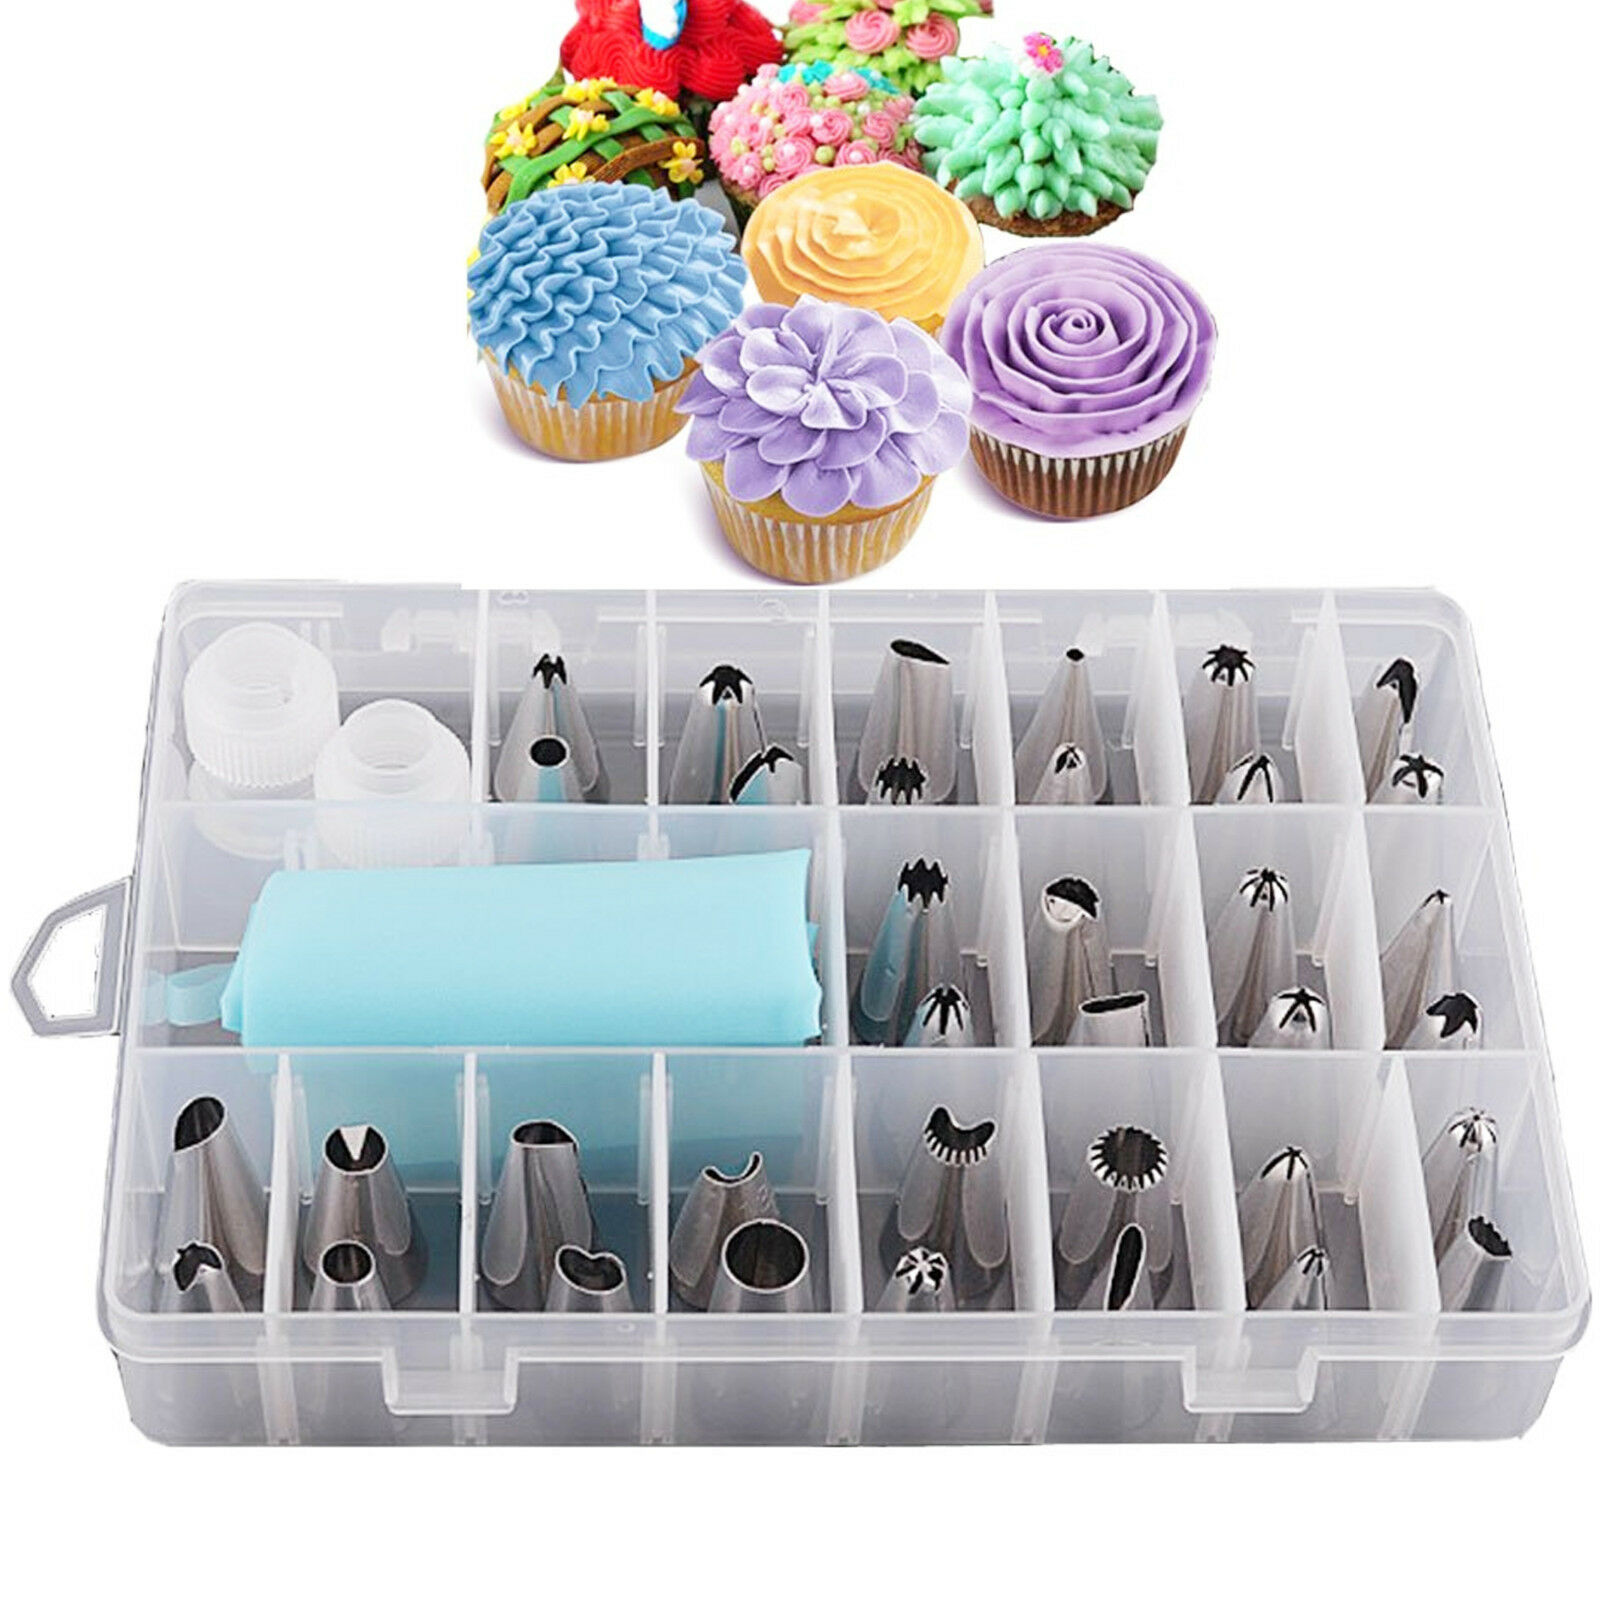 Stainless Steel Flower Icing Piping Nozzles Pastry Tips Set For Cake Cream Cu…